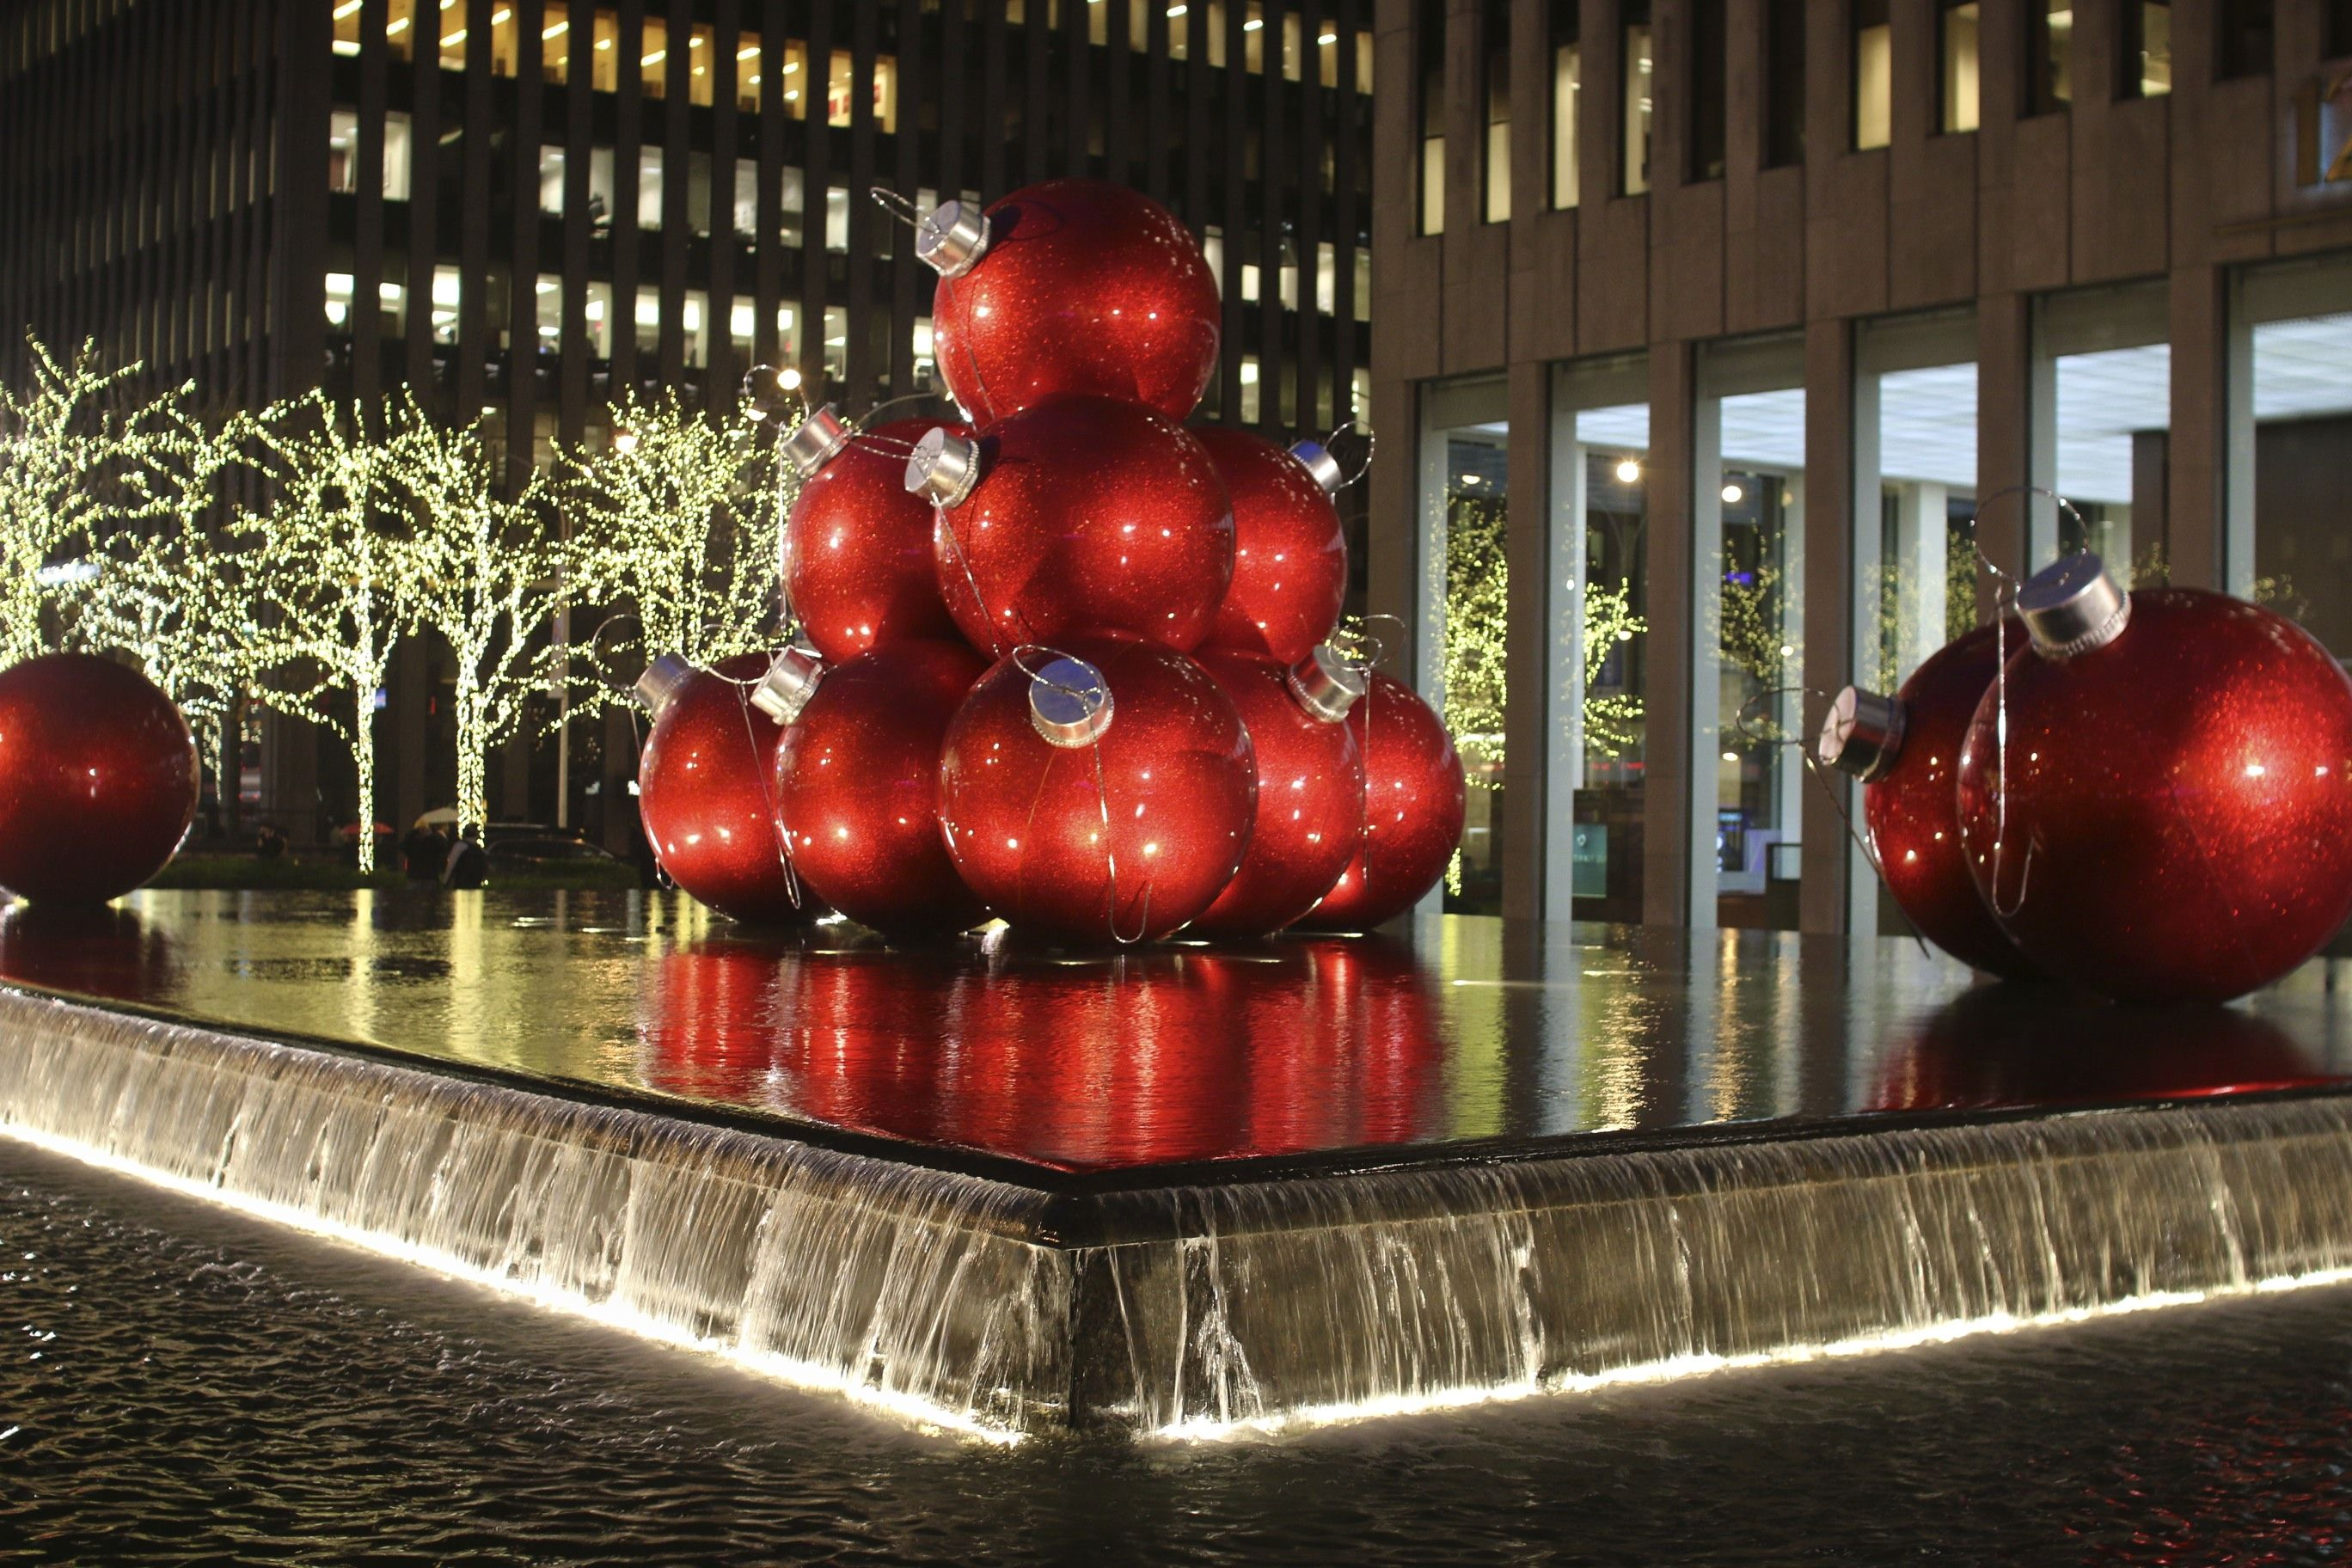 #AB2D20 CHRISTMAS DECORATIONS NEW YORK Christmas Pinterest 5549 decorations noel new york 2736x1824 px @ aertt.com